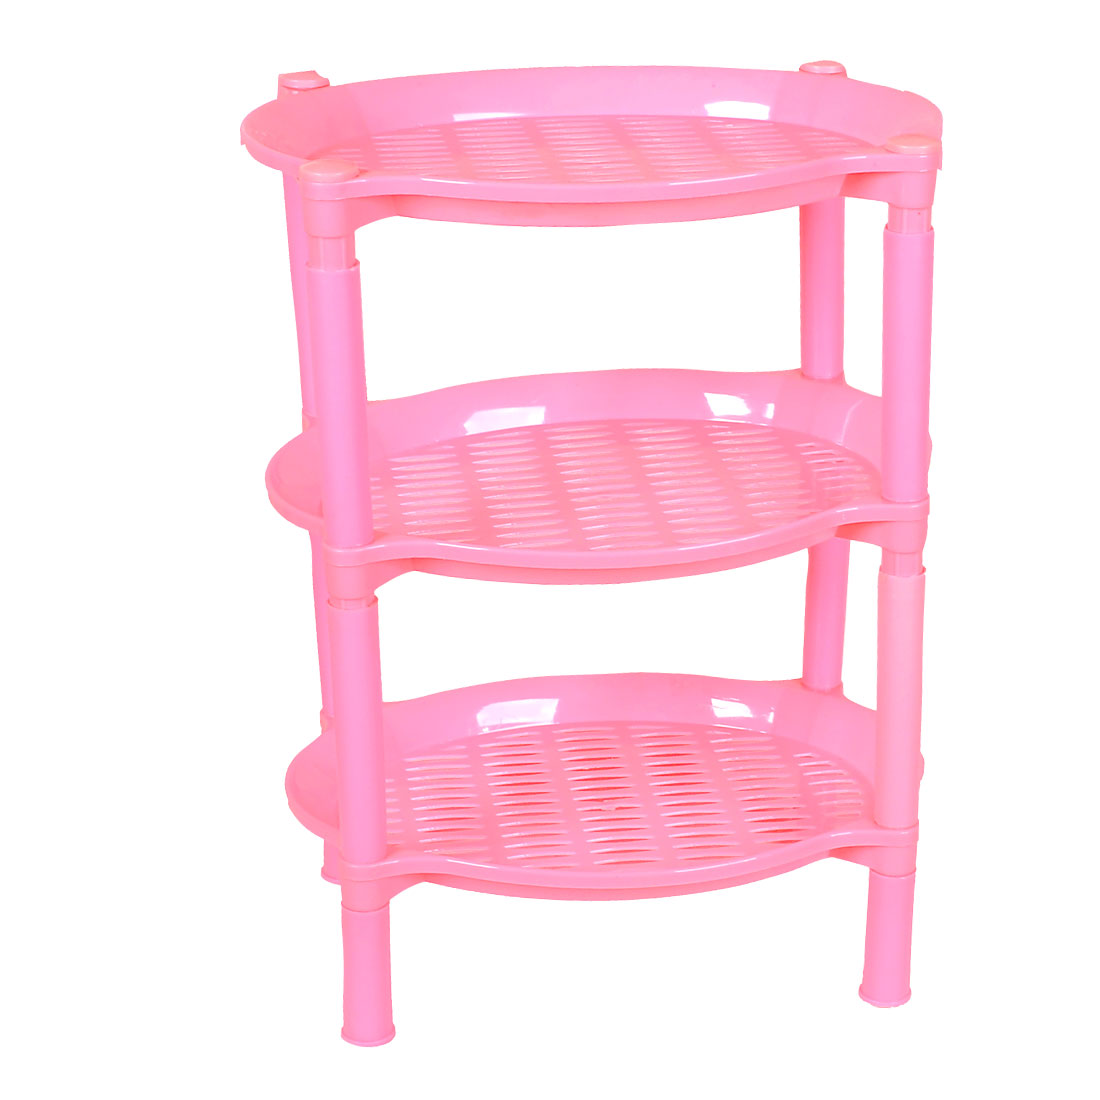 Household Oval Shape 3 Layers Pink Plastic Mini Storage Rack Shelf